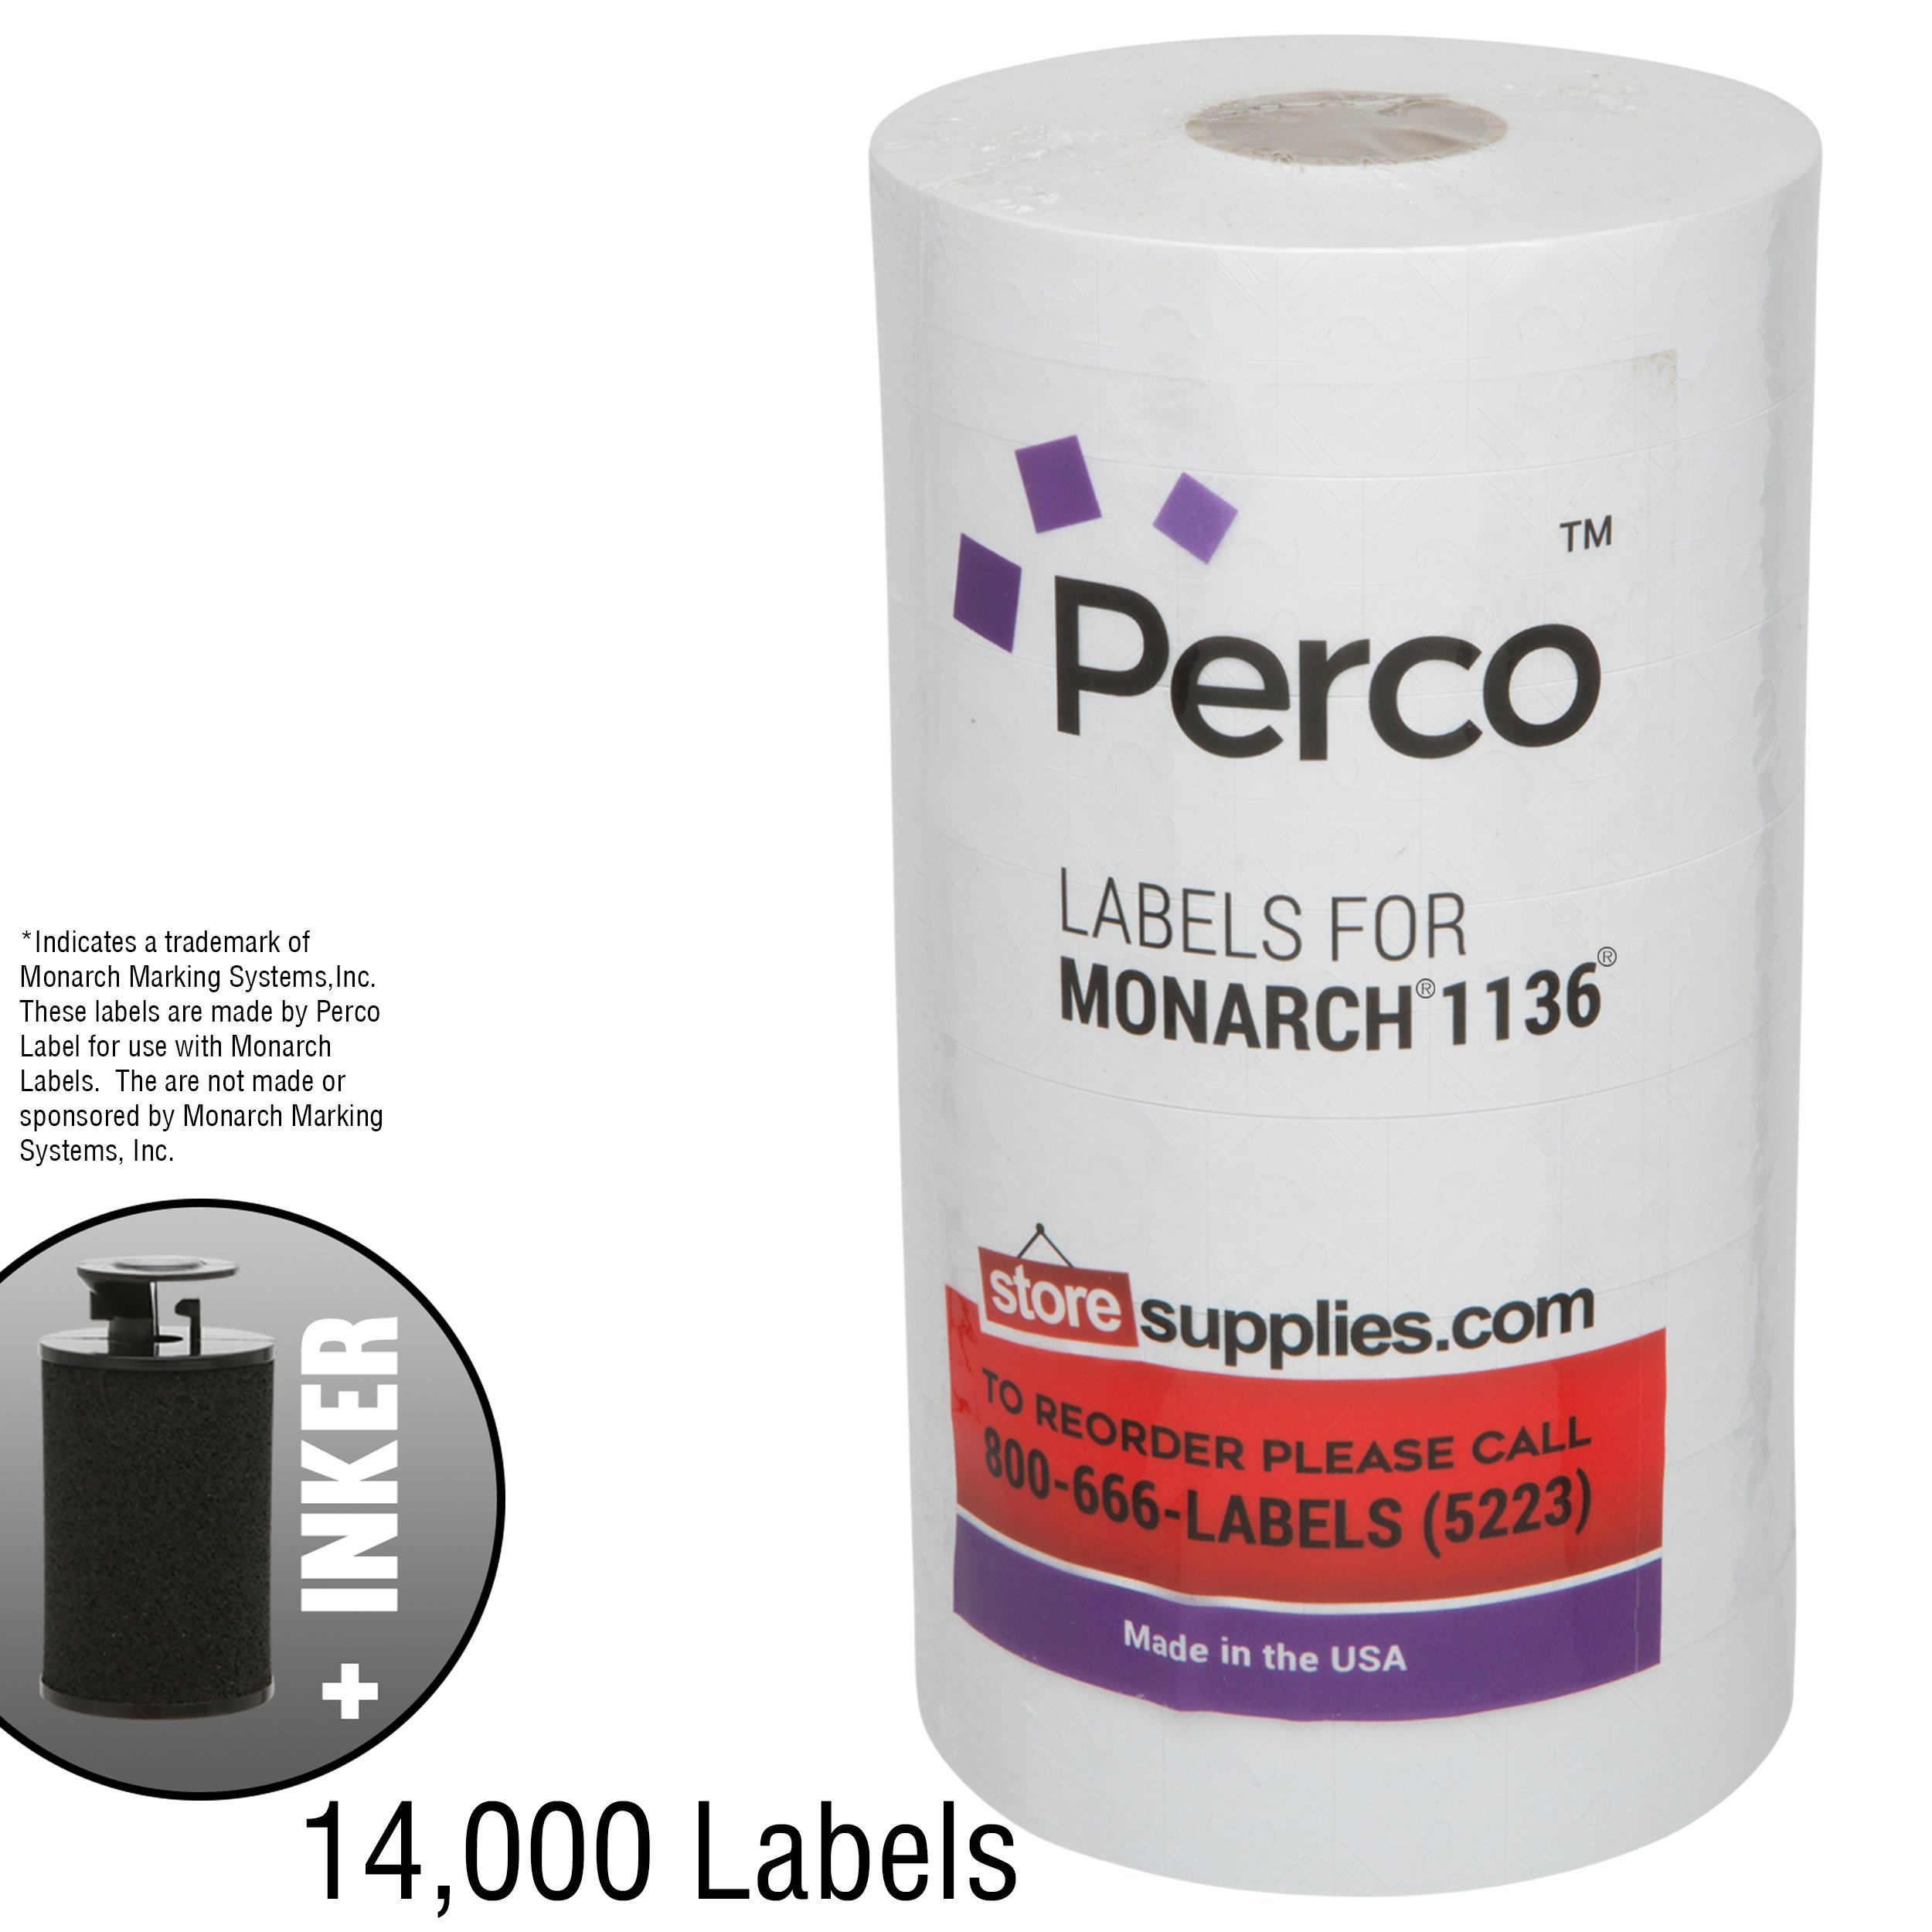 White Pricing Labels for Monarch 1136 Price Gun - 8 Rolls, 14,000 Pricemarking Labels - with Bonus Ink Roll Included by Perco